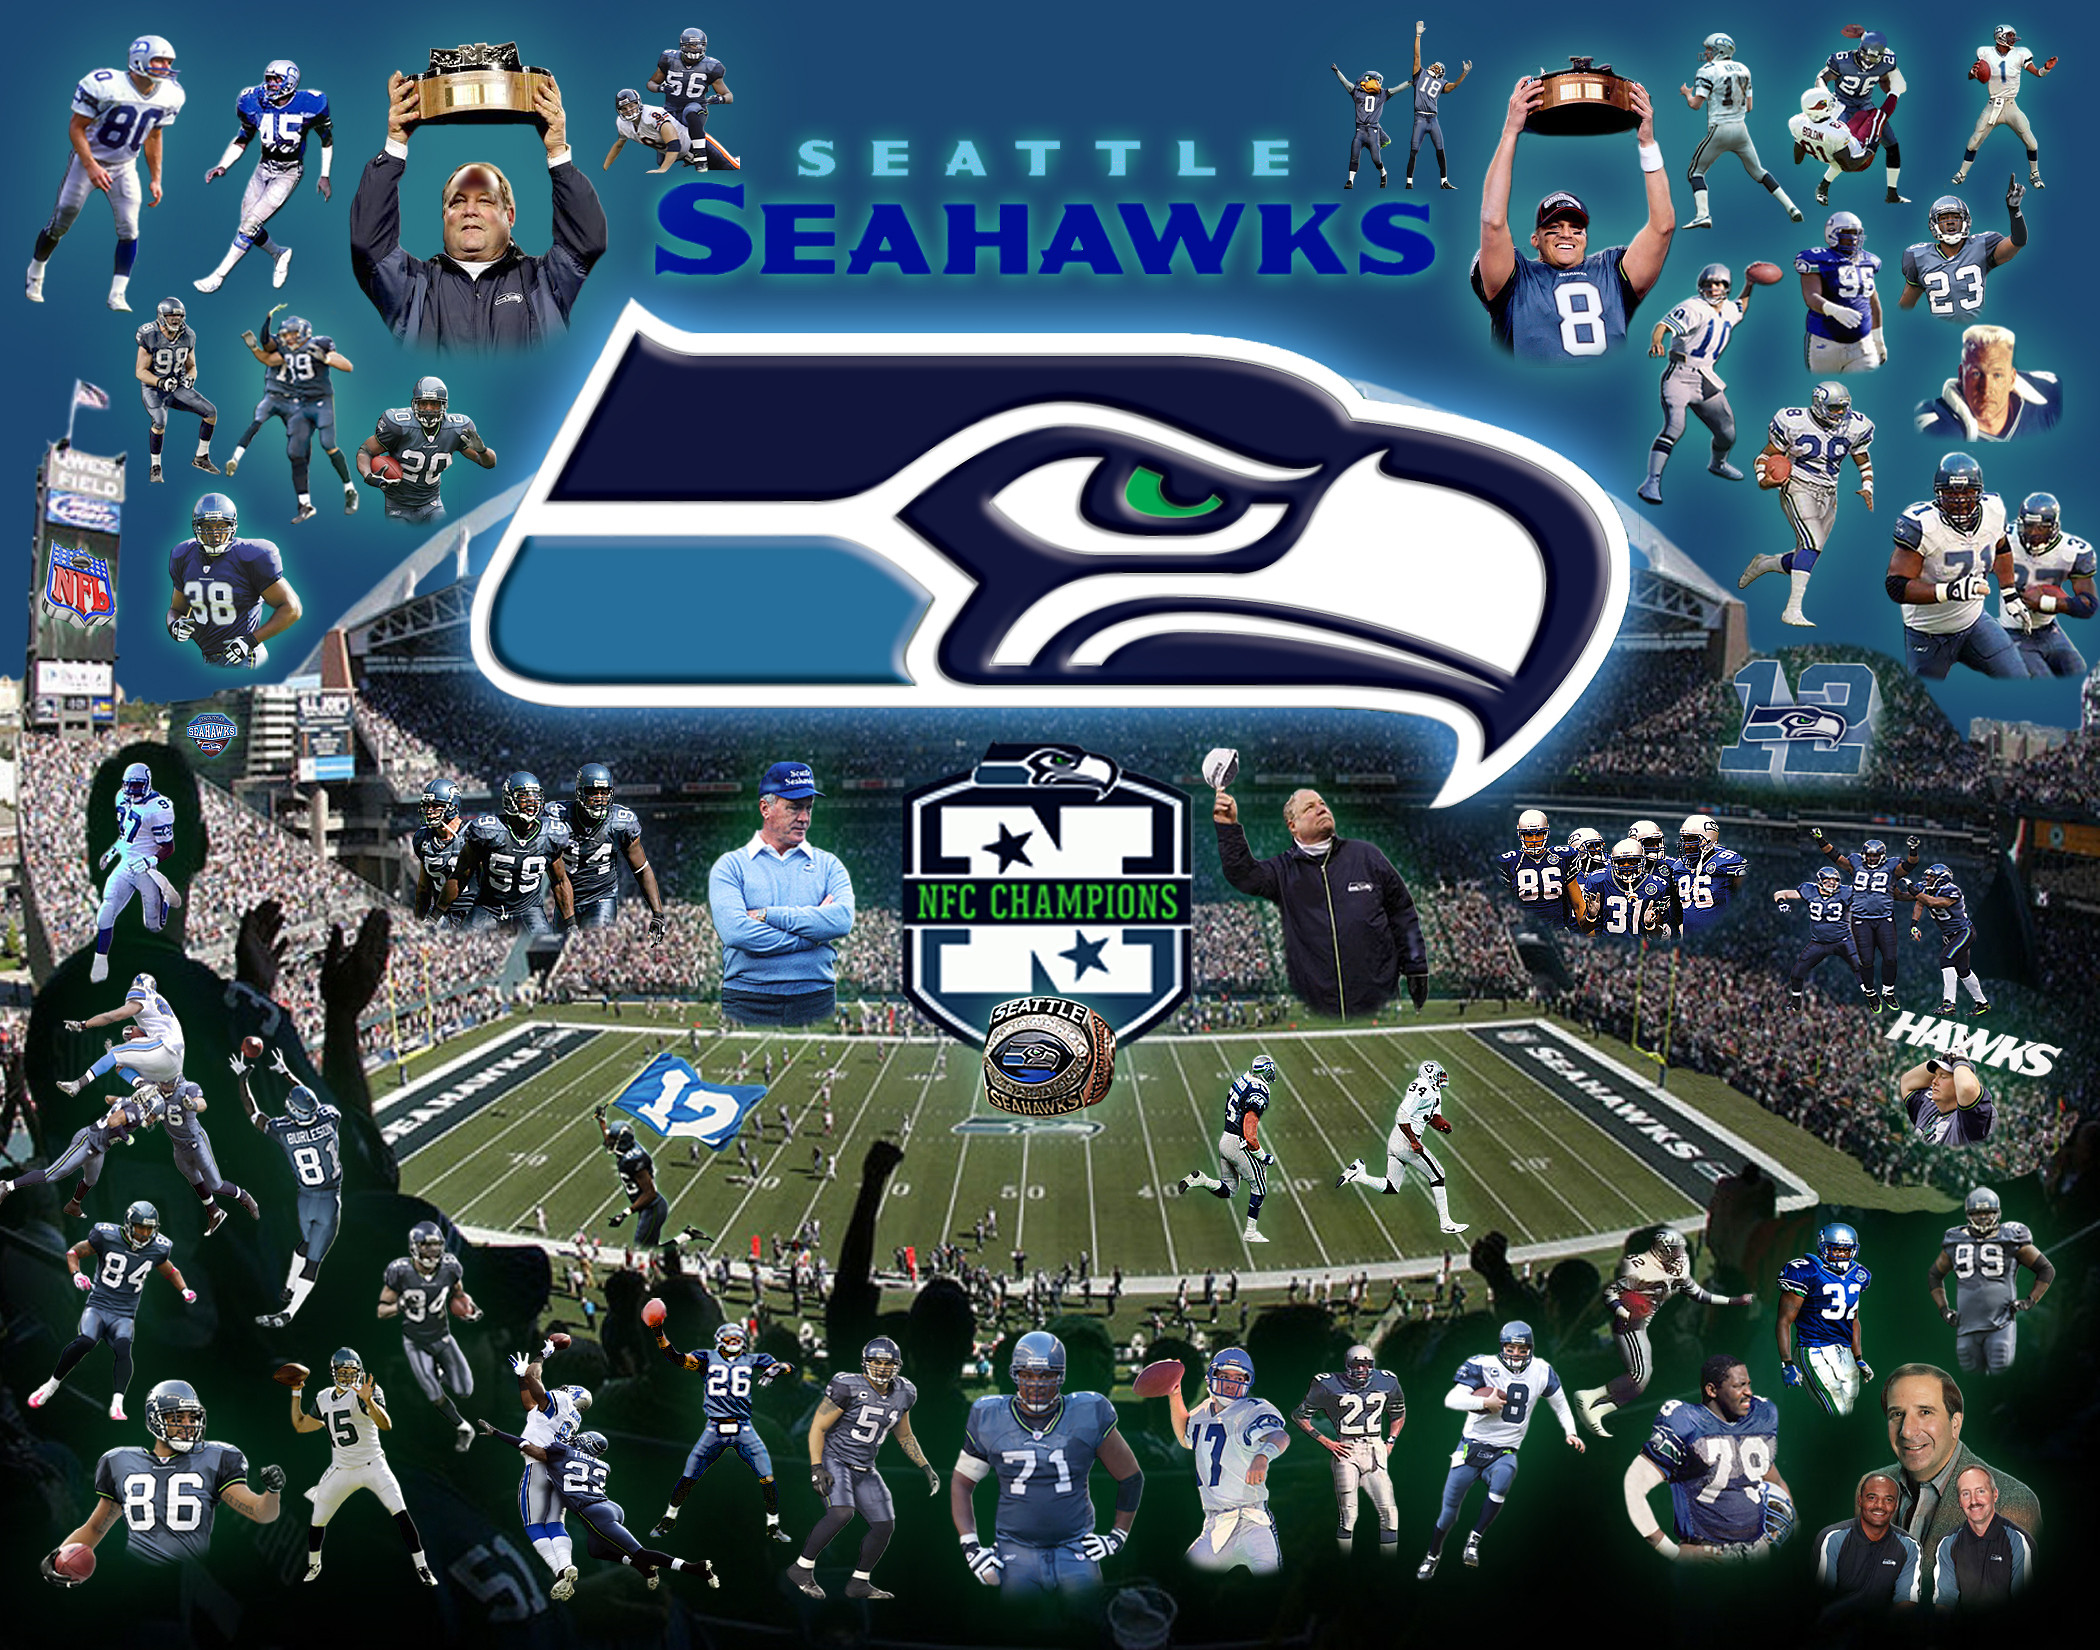 Seattle images SEAHAWKS! HD wallpaper and background photos